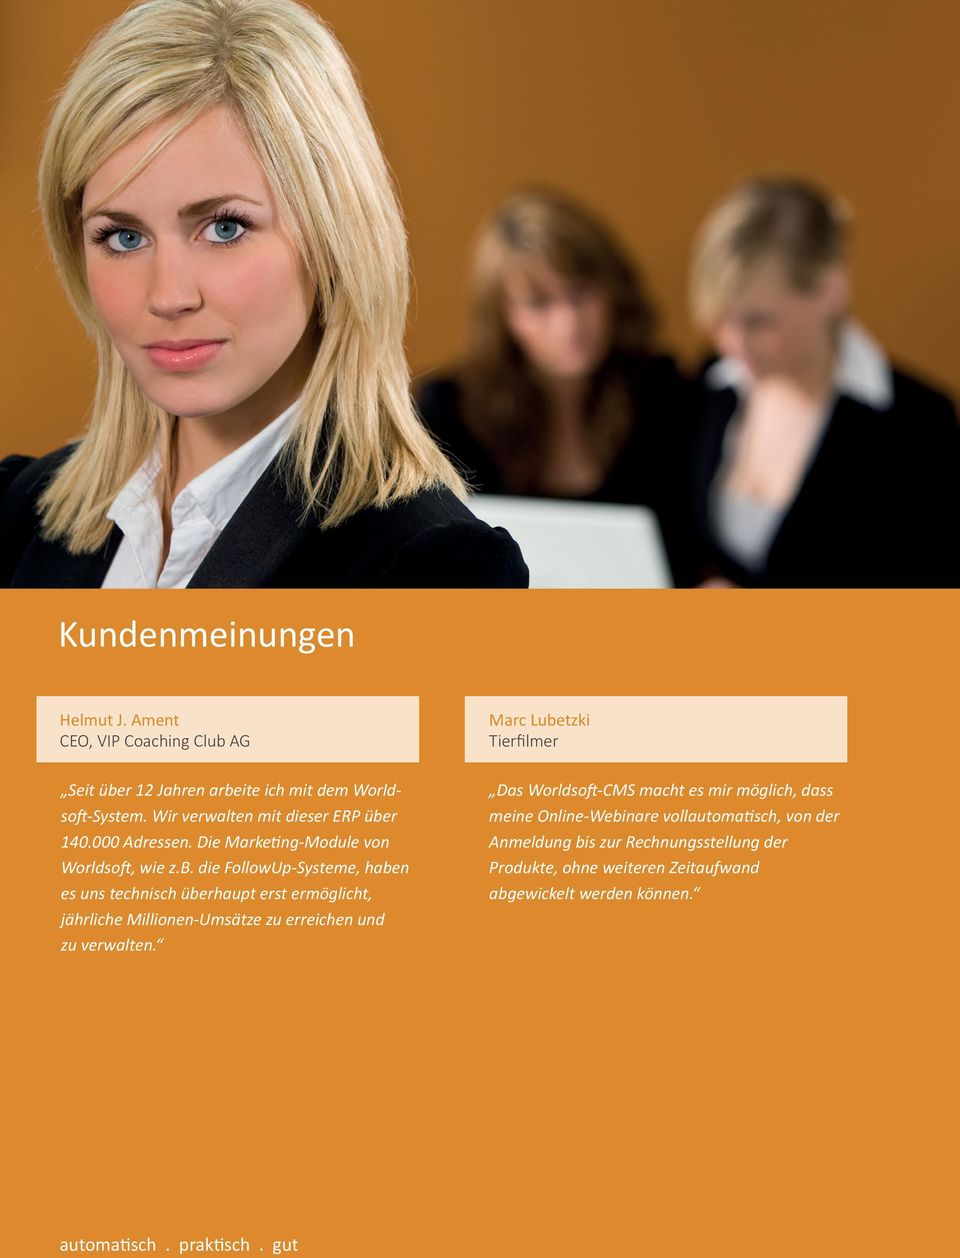 r 140.000 Adressen. Die Marketing-Module von Worldsoft, wie z.b.